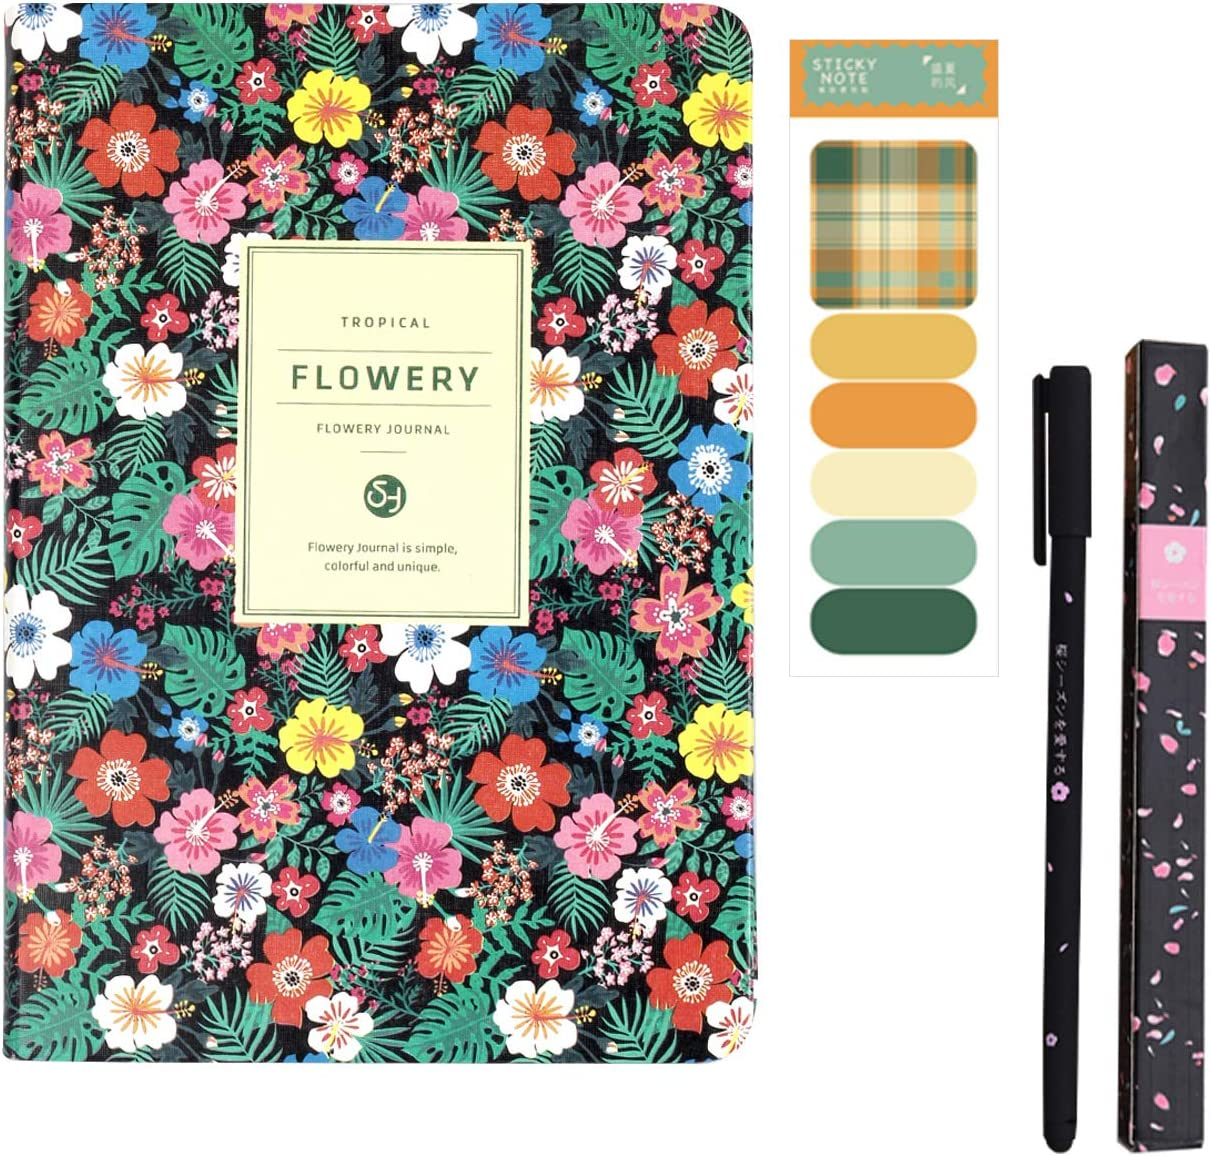 Hardcover Flowery Journal with Cherry Blossom Pen and Morandi Color Stickers 2021 Monthly Weekly Personal Planner for Academic or Workplace